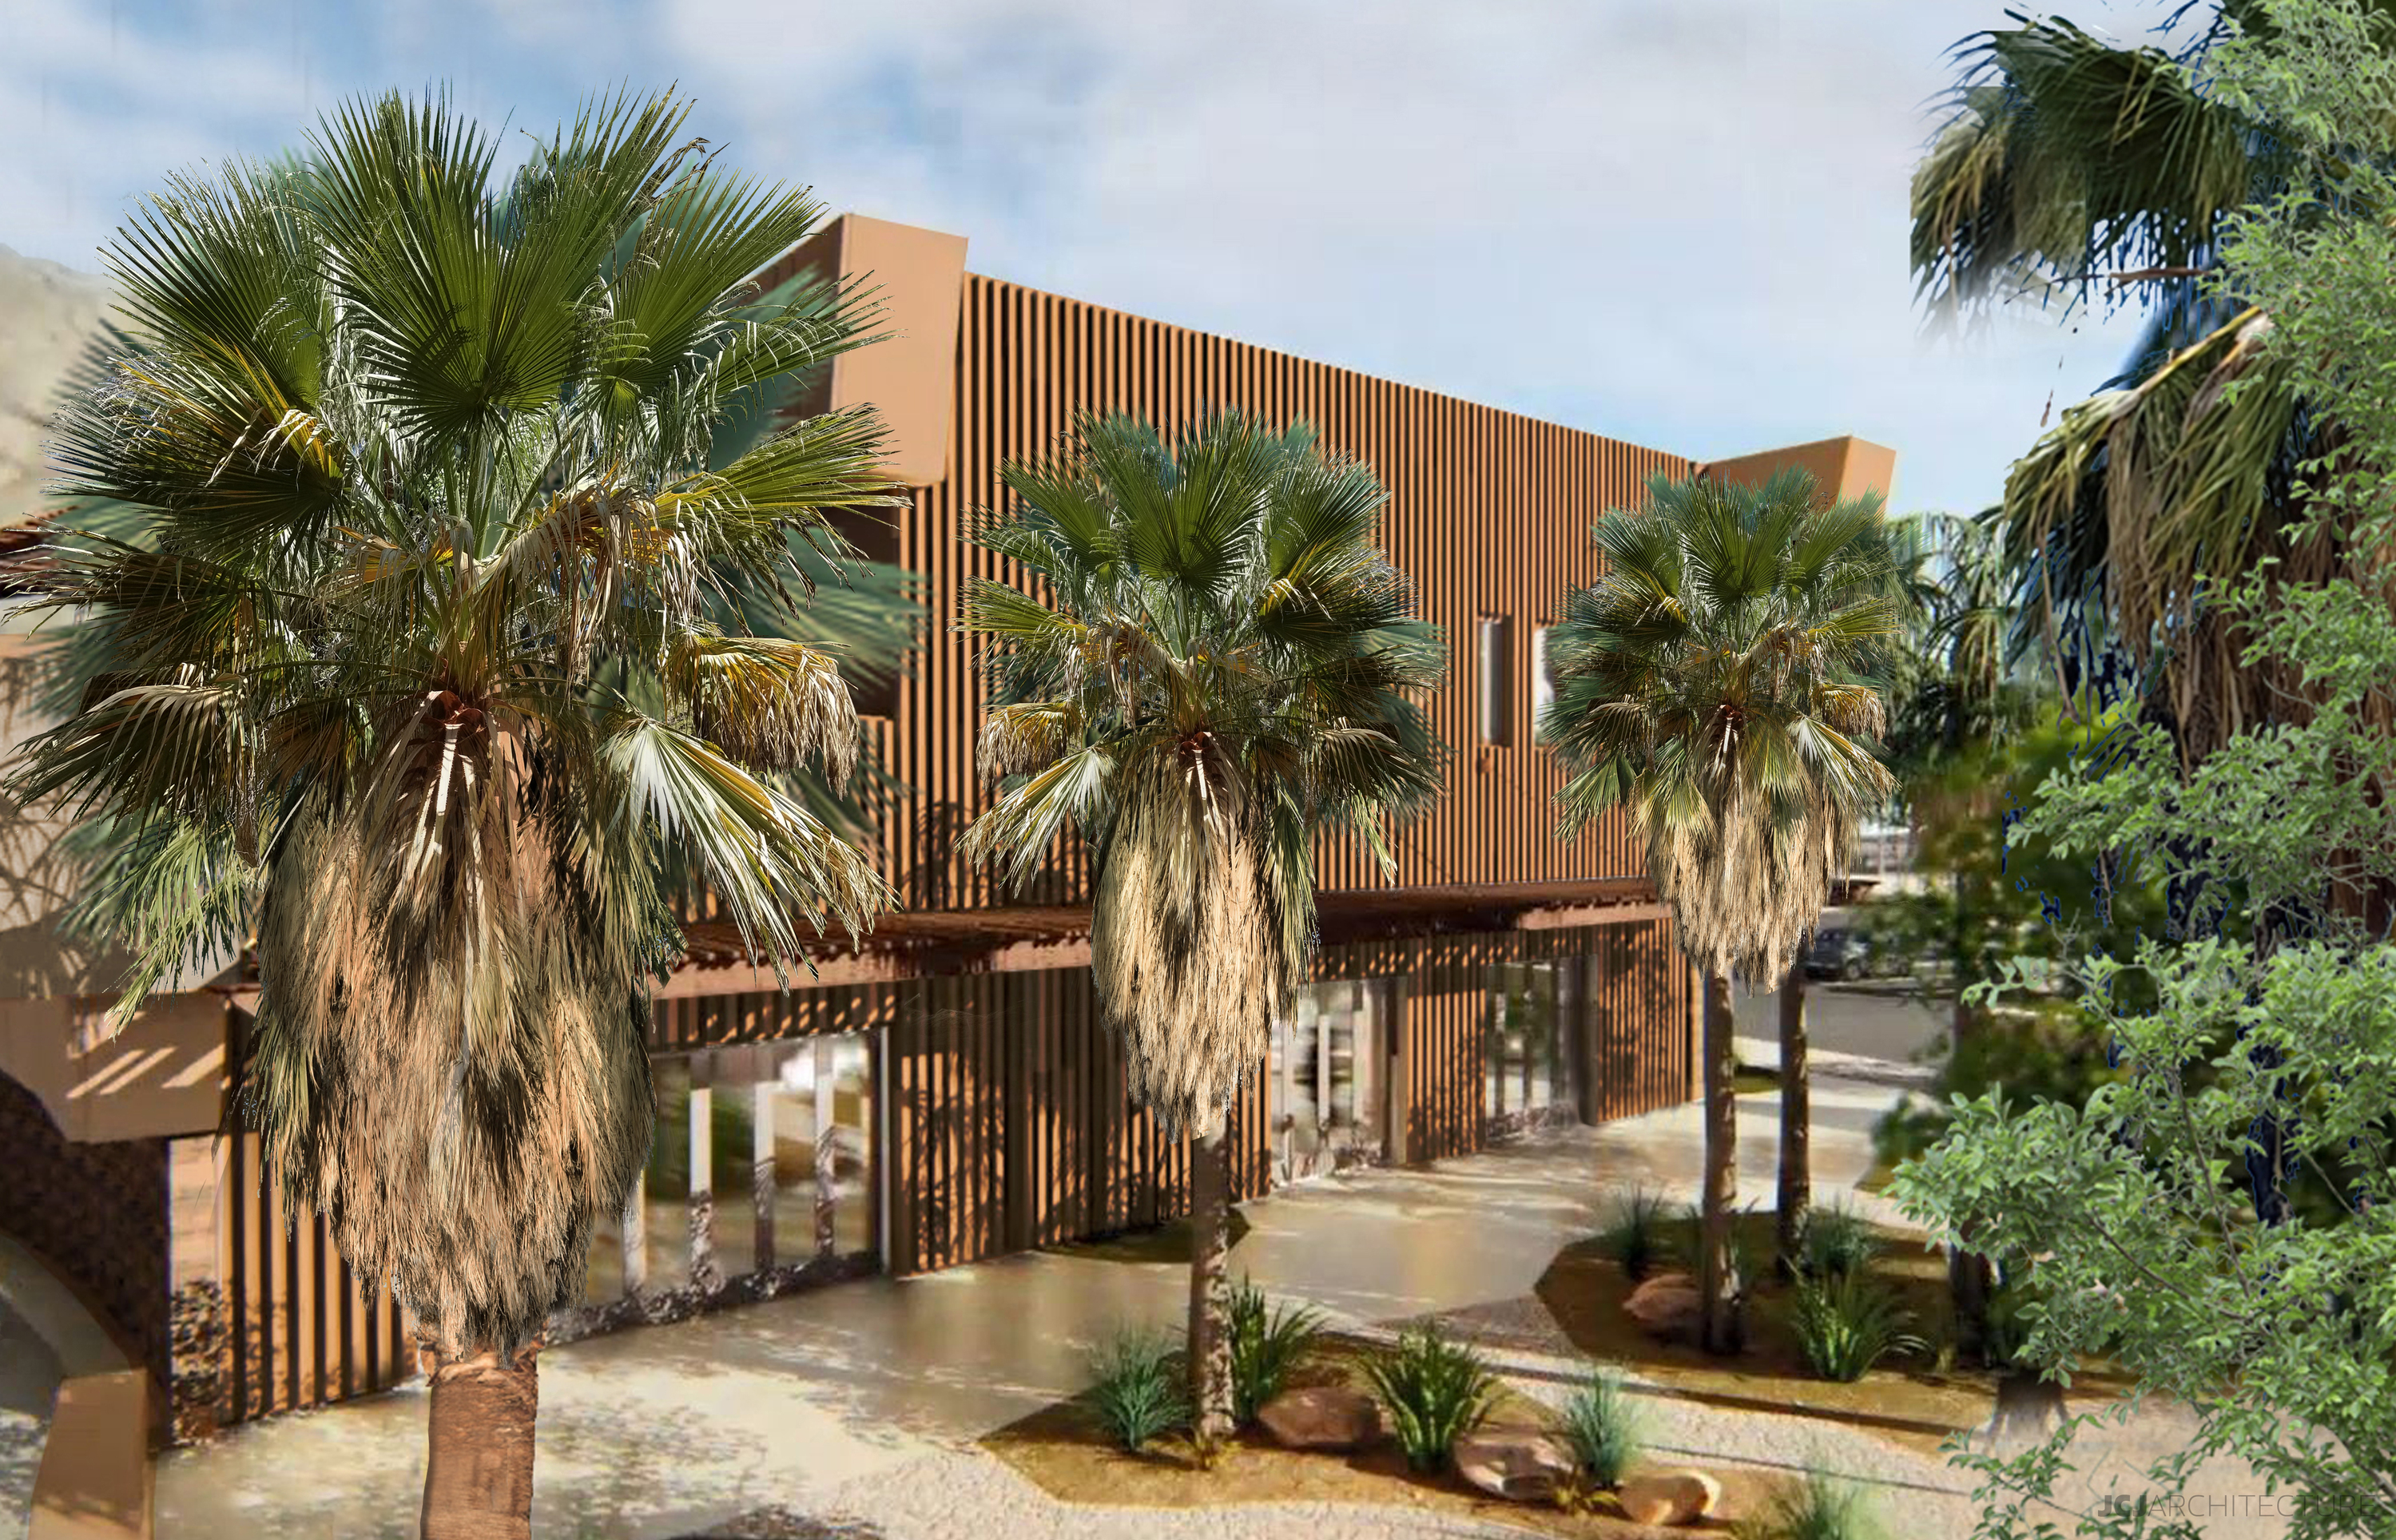 Agua Caliente Museum and Spa5